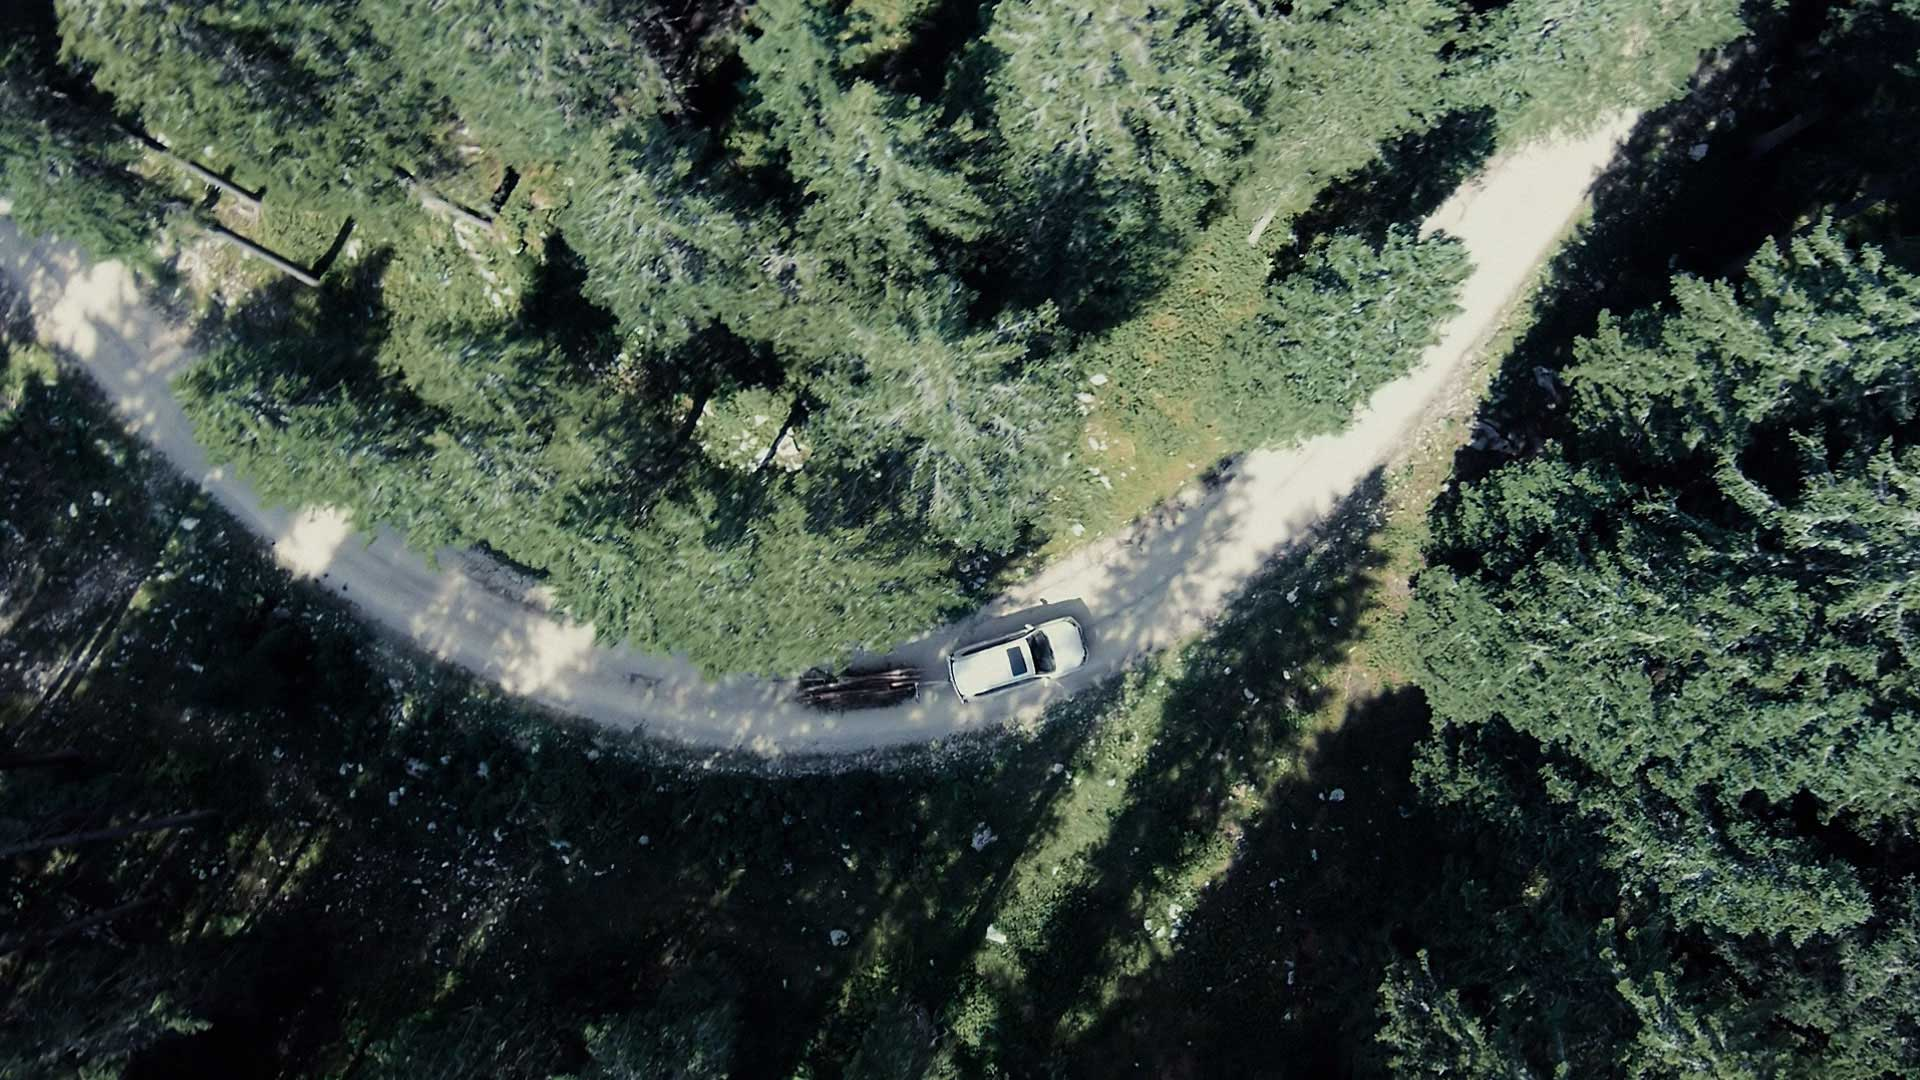 Countryroads from above. Still from Toyota Landcruiser.